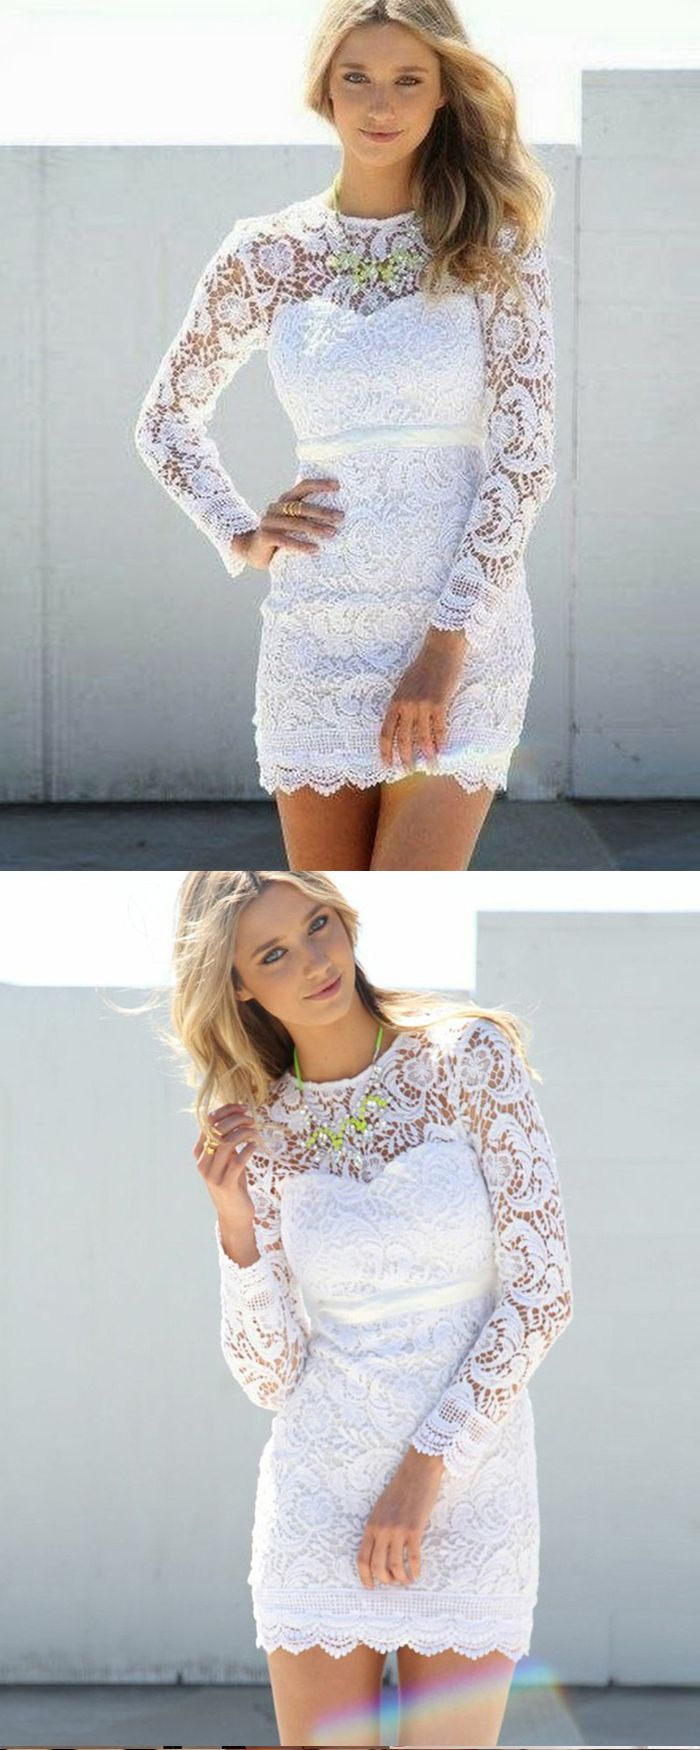 Jewel White Lace Tight Short Formal Dress With Long Sleeves Hd3279 Formal Dresses Short Formal Dresses Short Formal Dress [ 1750 x 700 Pixel ]